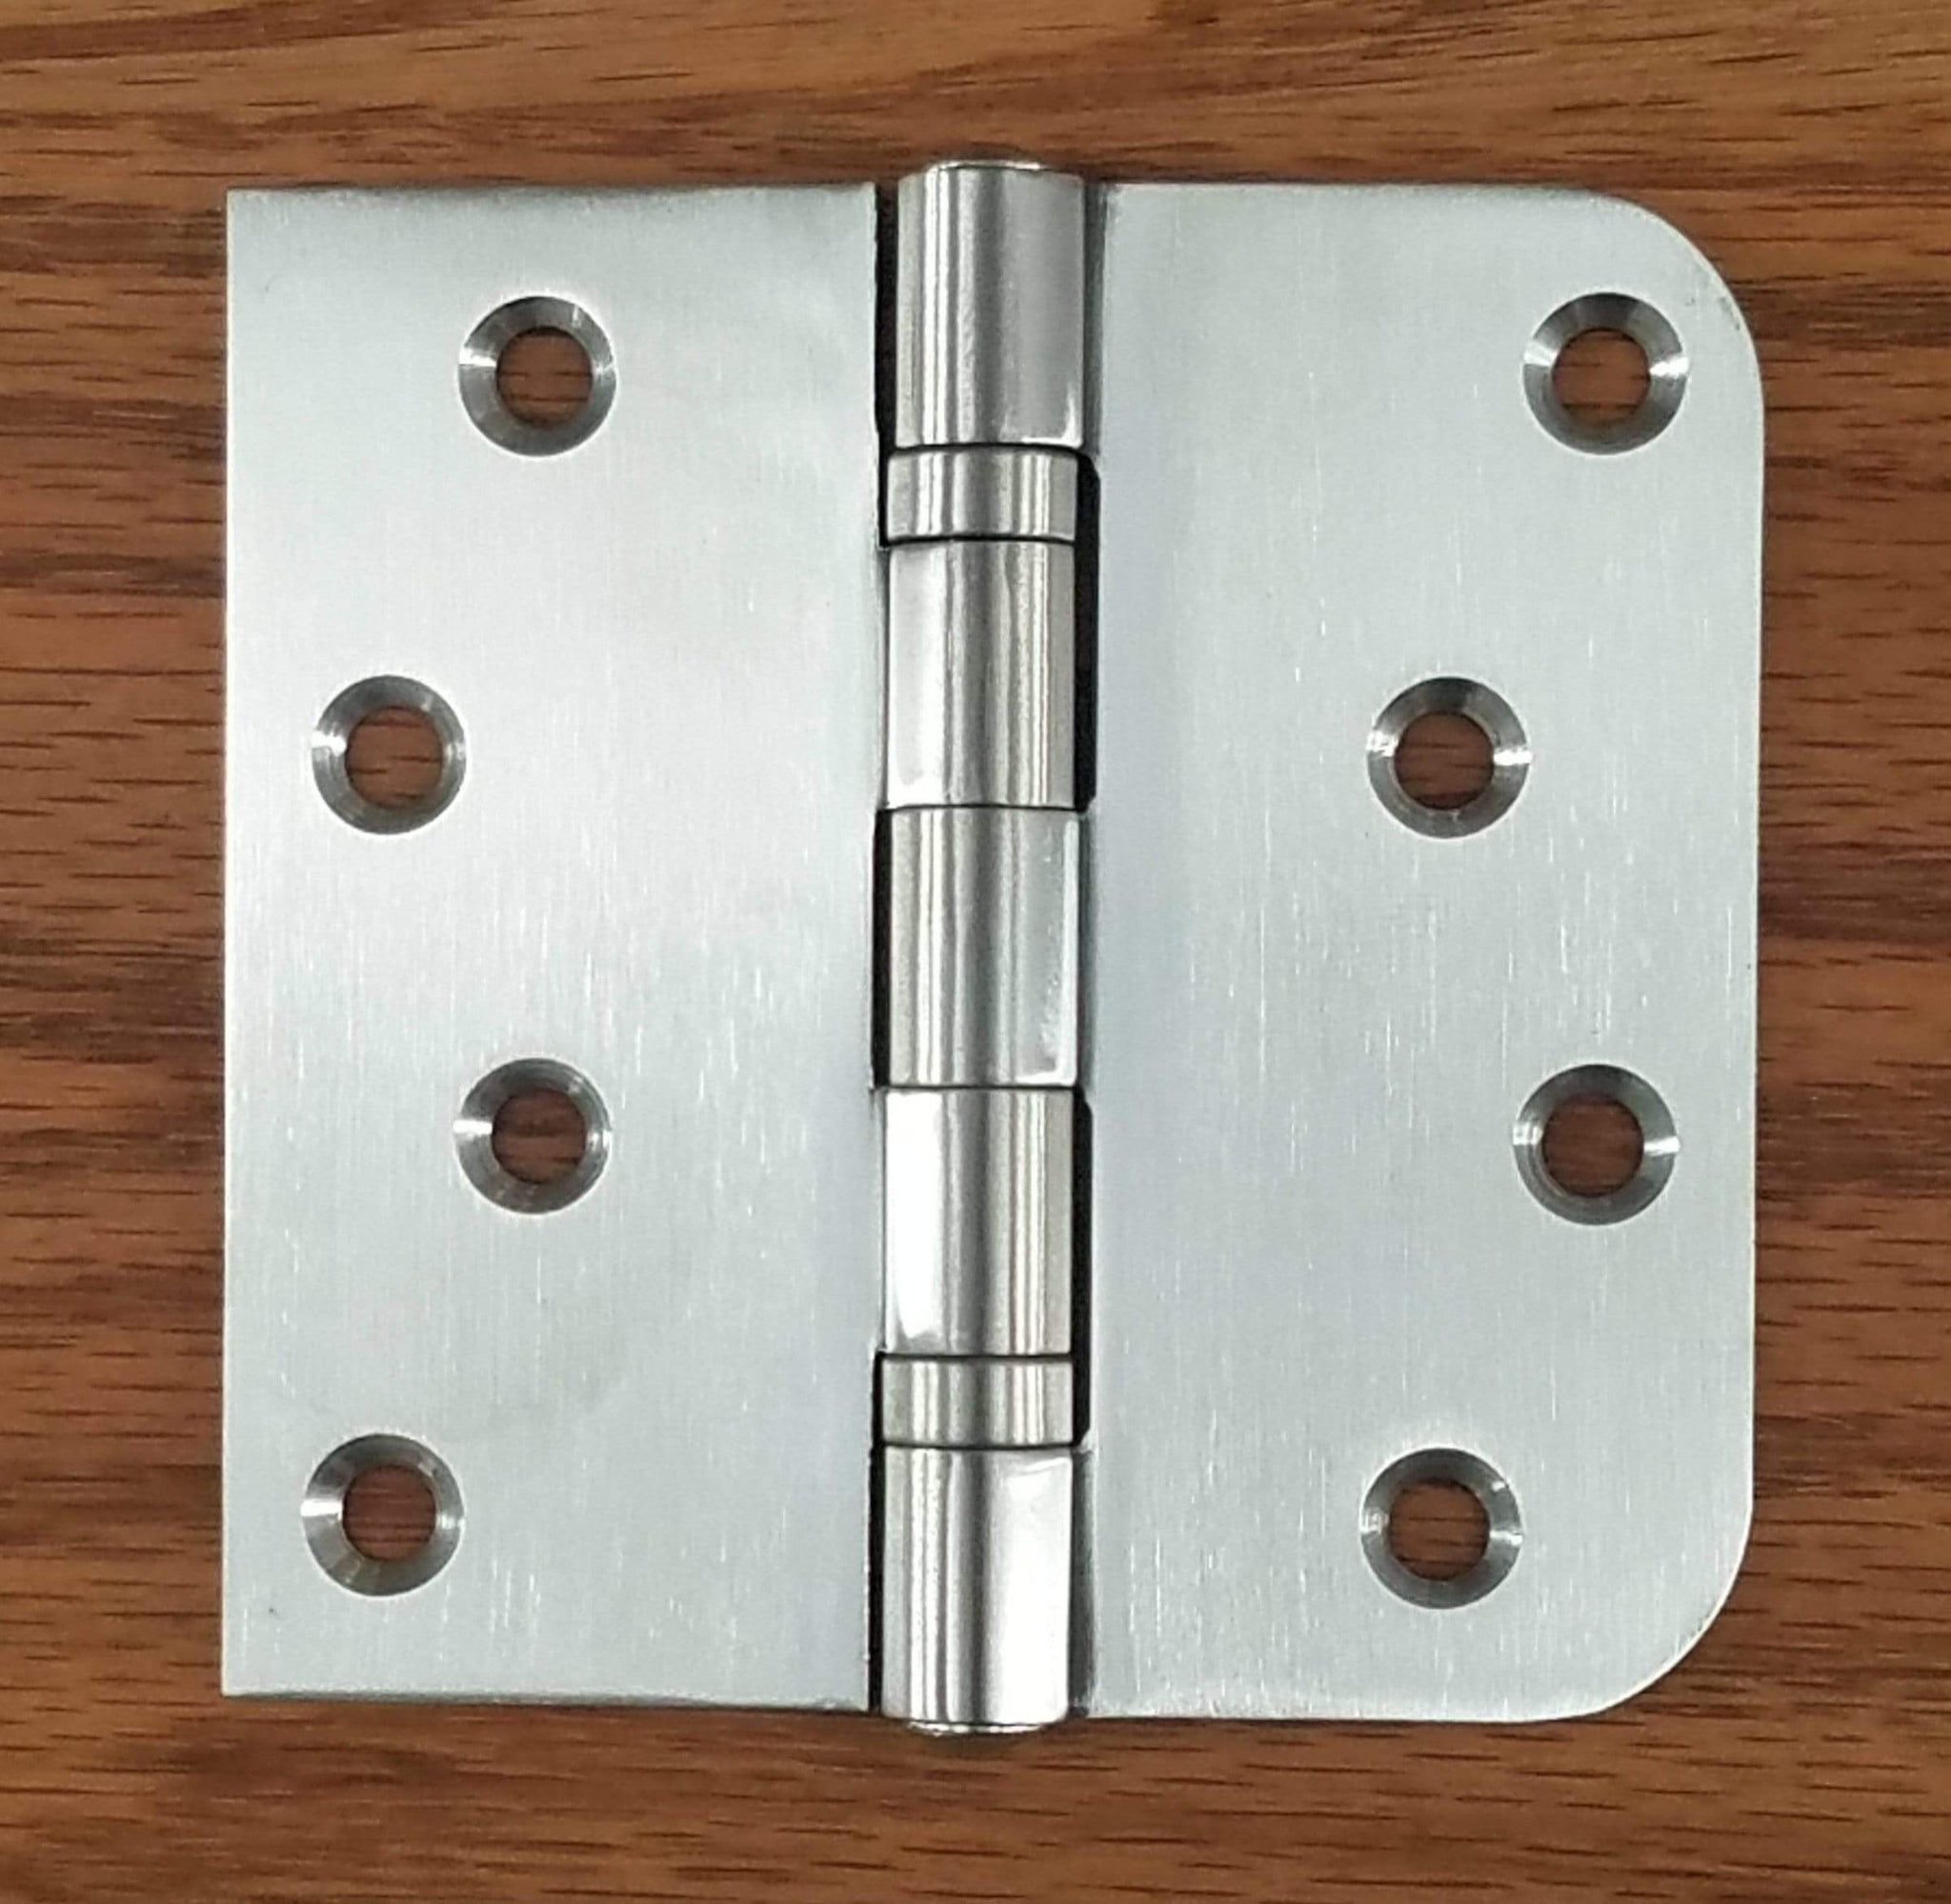 Stainless Steel Ball Bearing NRP Hinges Pack of 3 4 X 4 with 5//8 Radius Corner